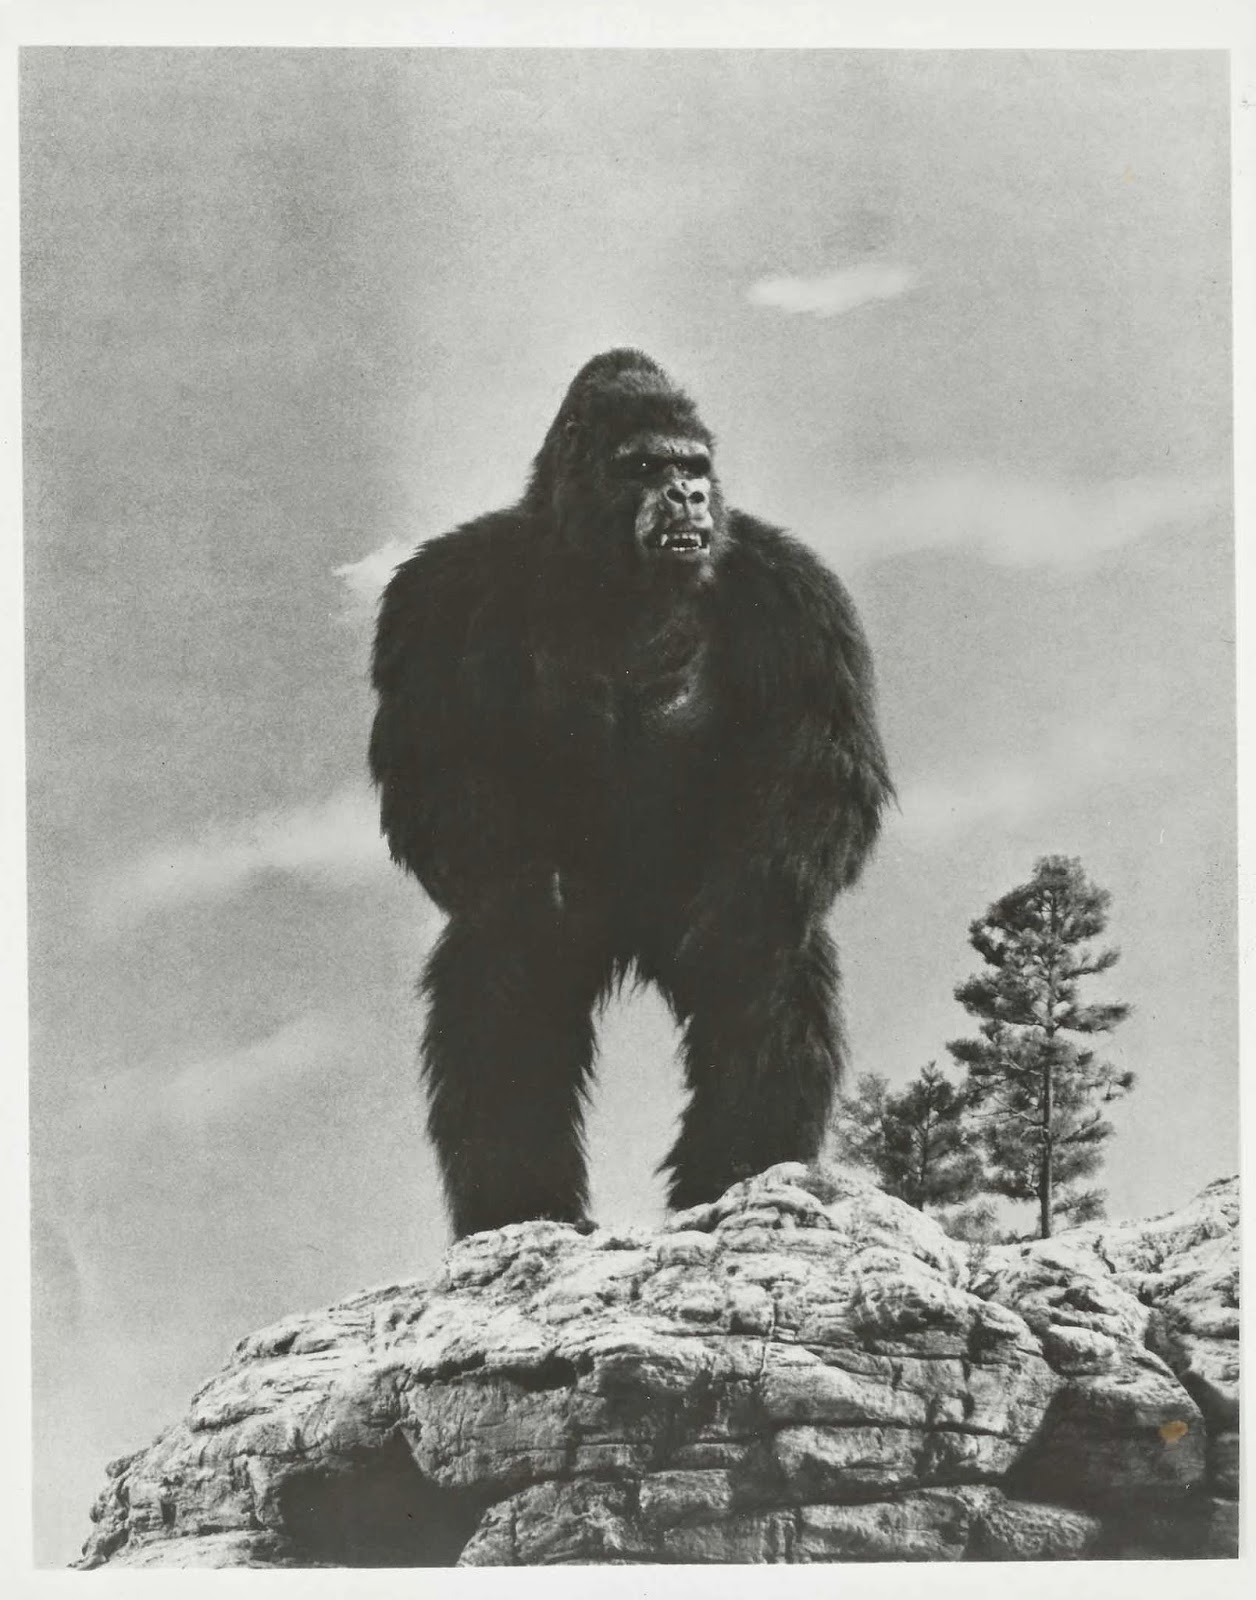 Baker's Log: A brief history of King Kong and friends